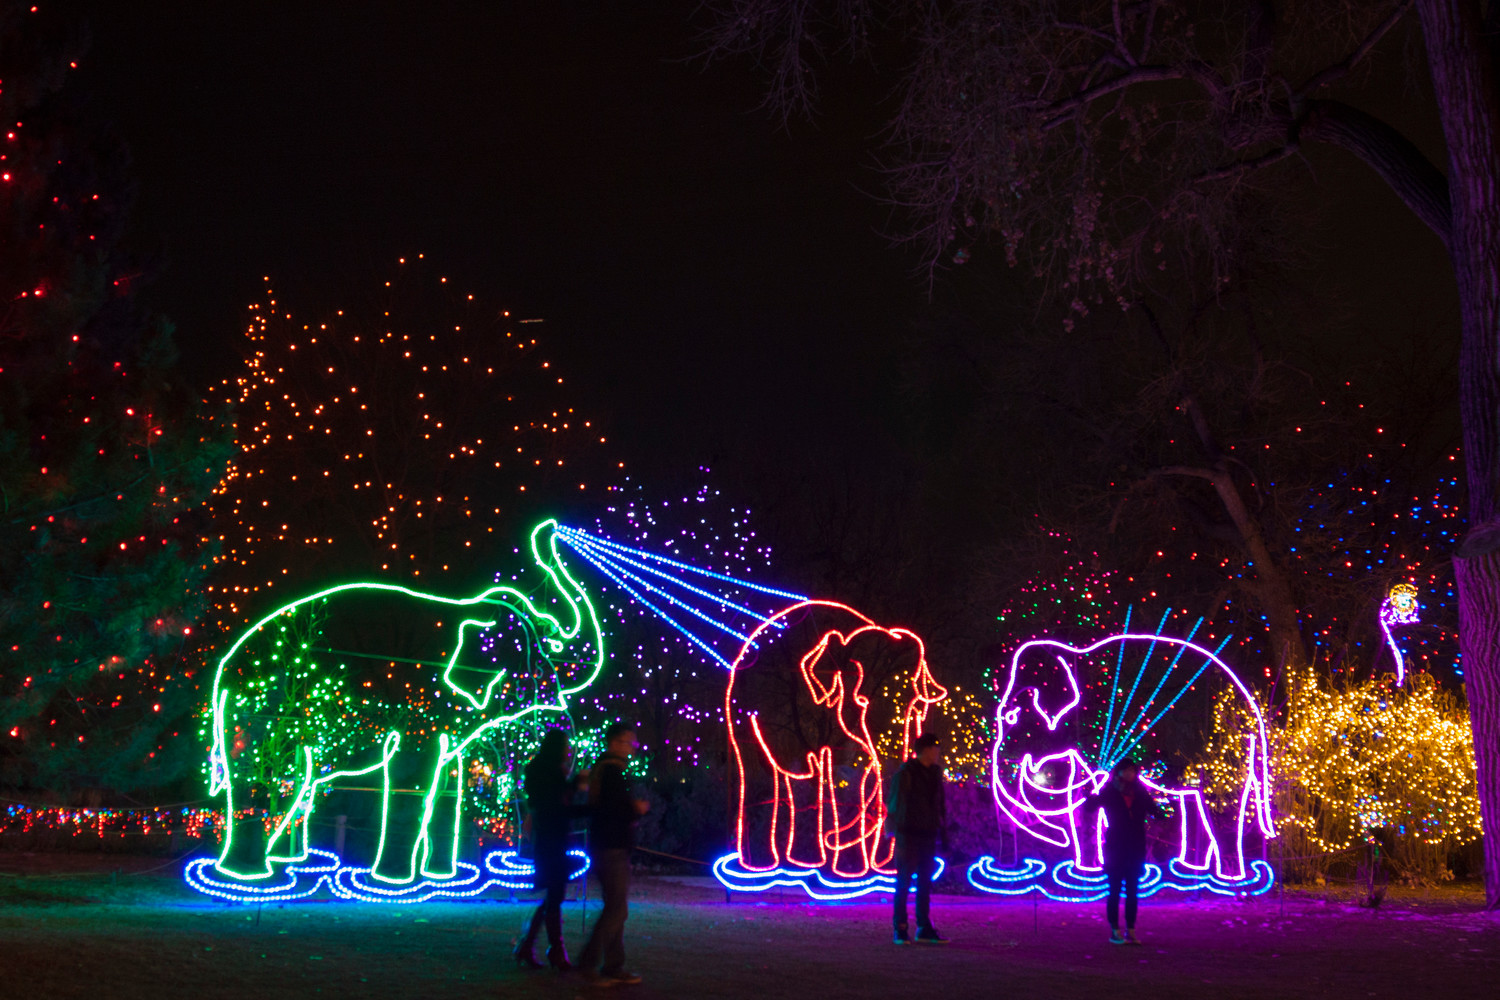 During Zoo Lights, about 130 animated animal sculptures fill the Denver Zoo.